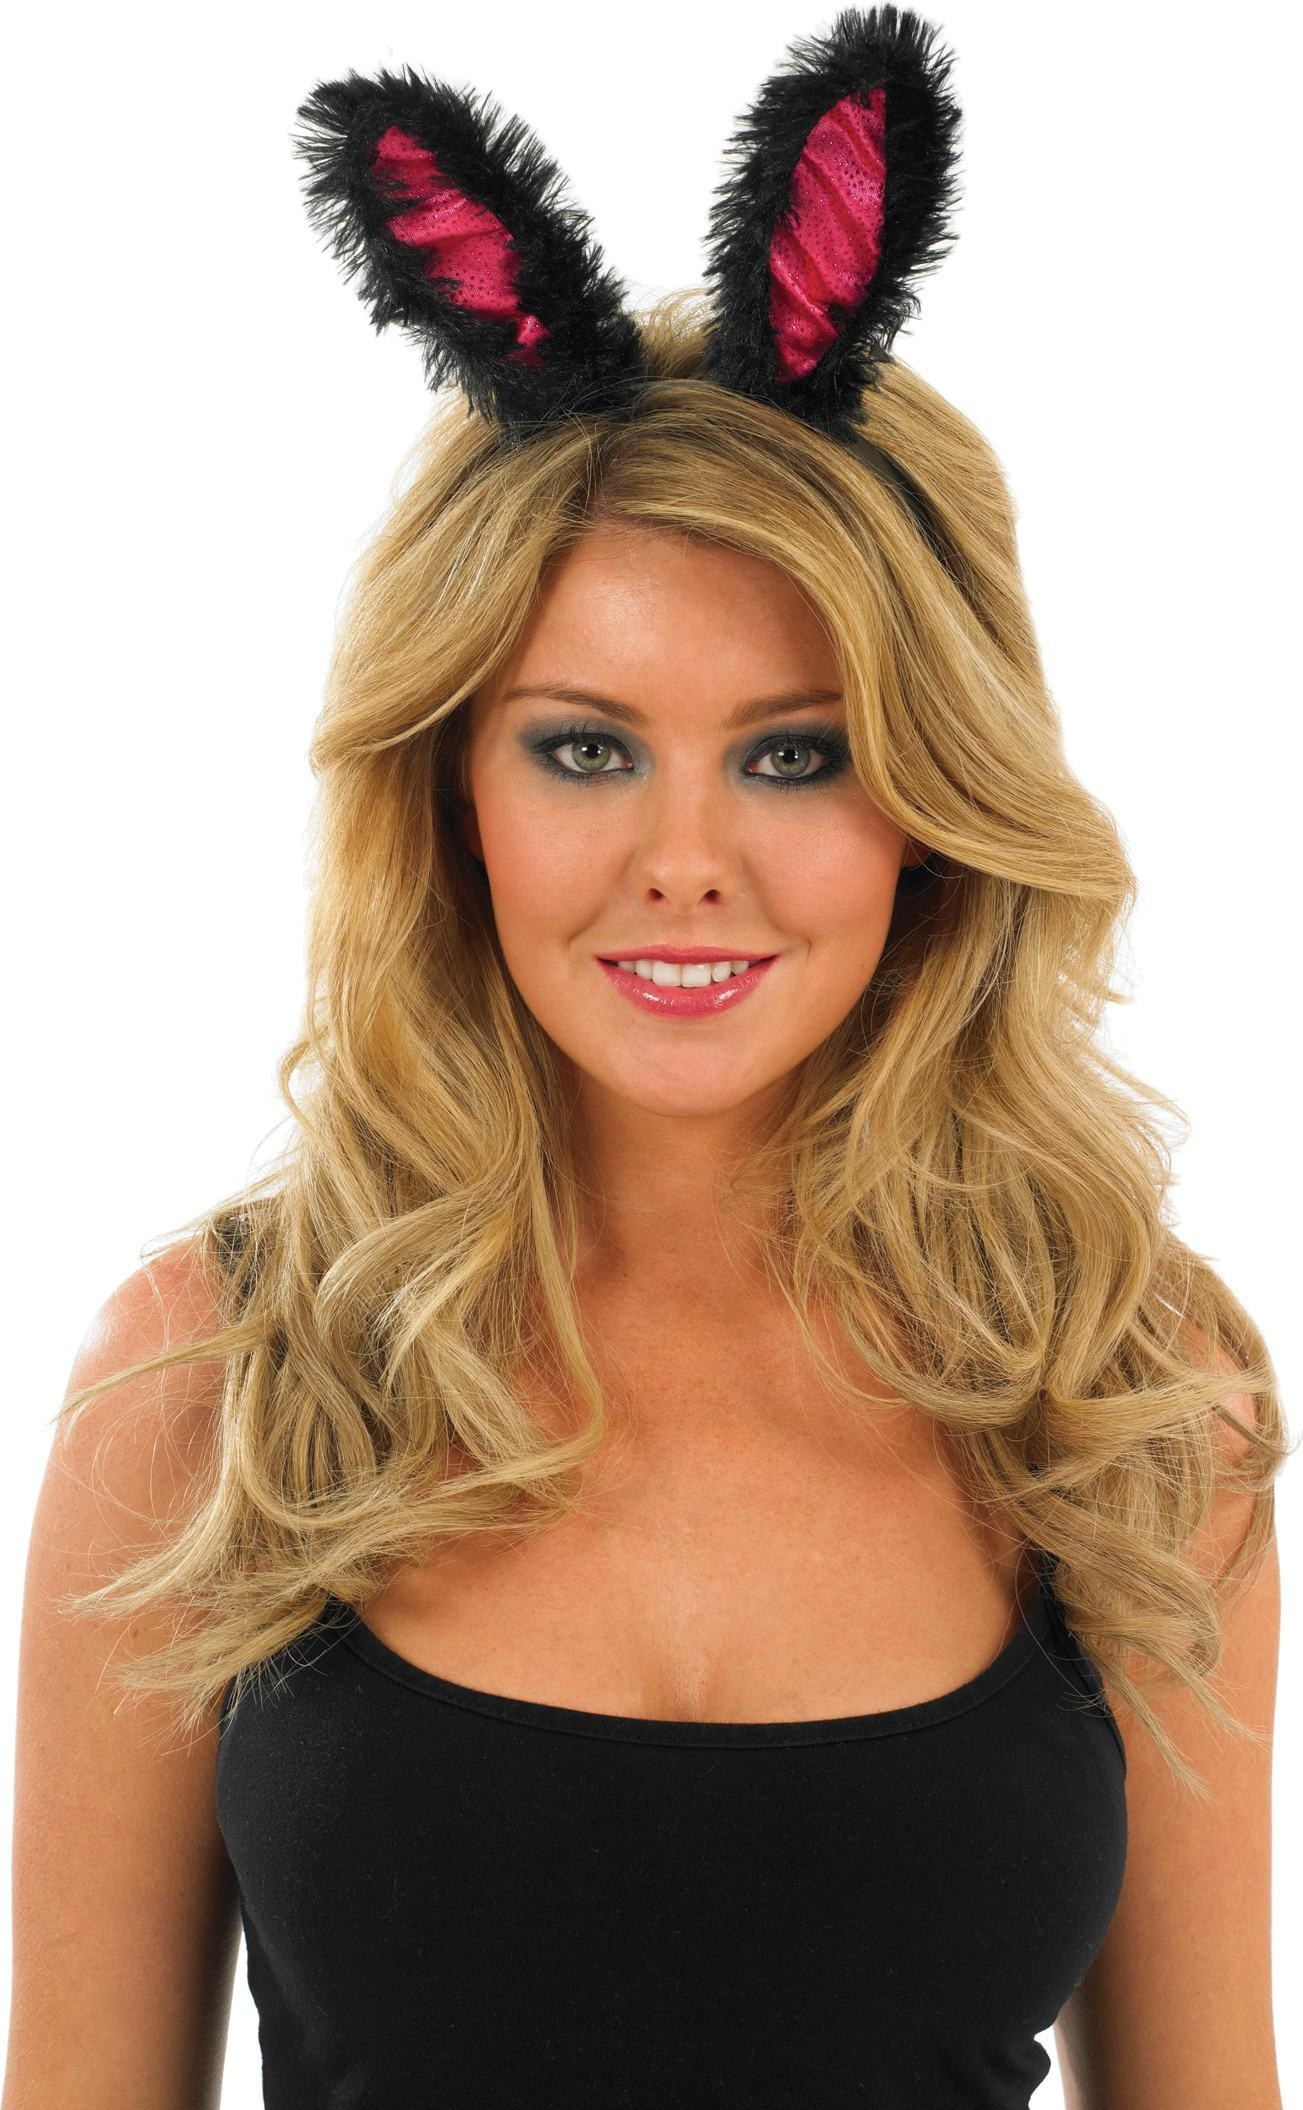 Pink Bunny Ears With Black Fur (Animals Fancy Dress Disguises)